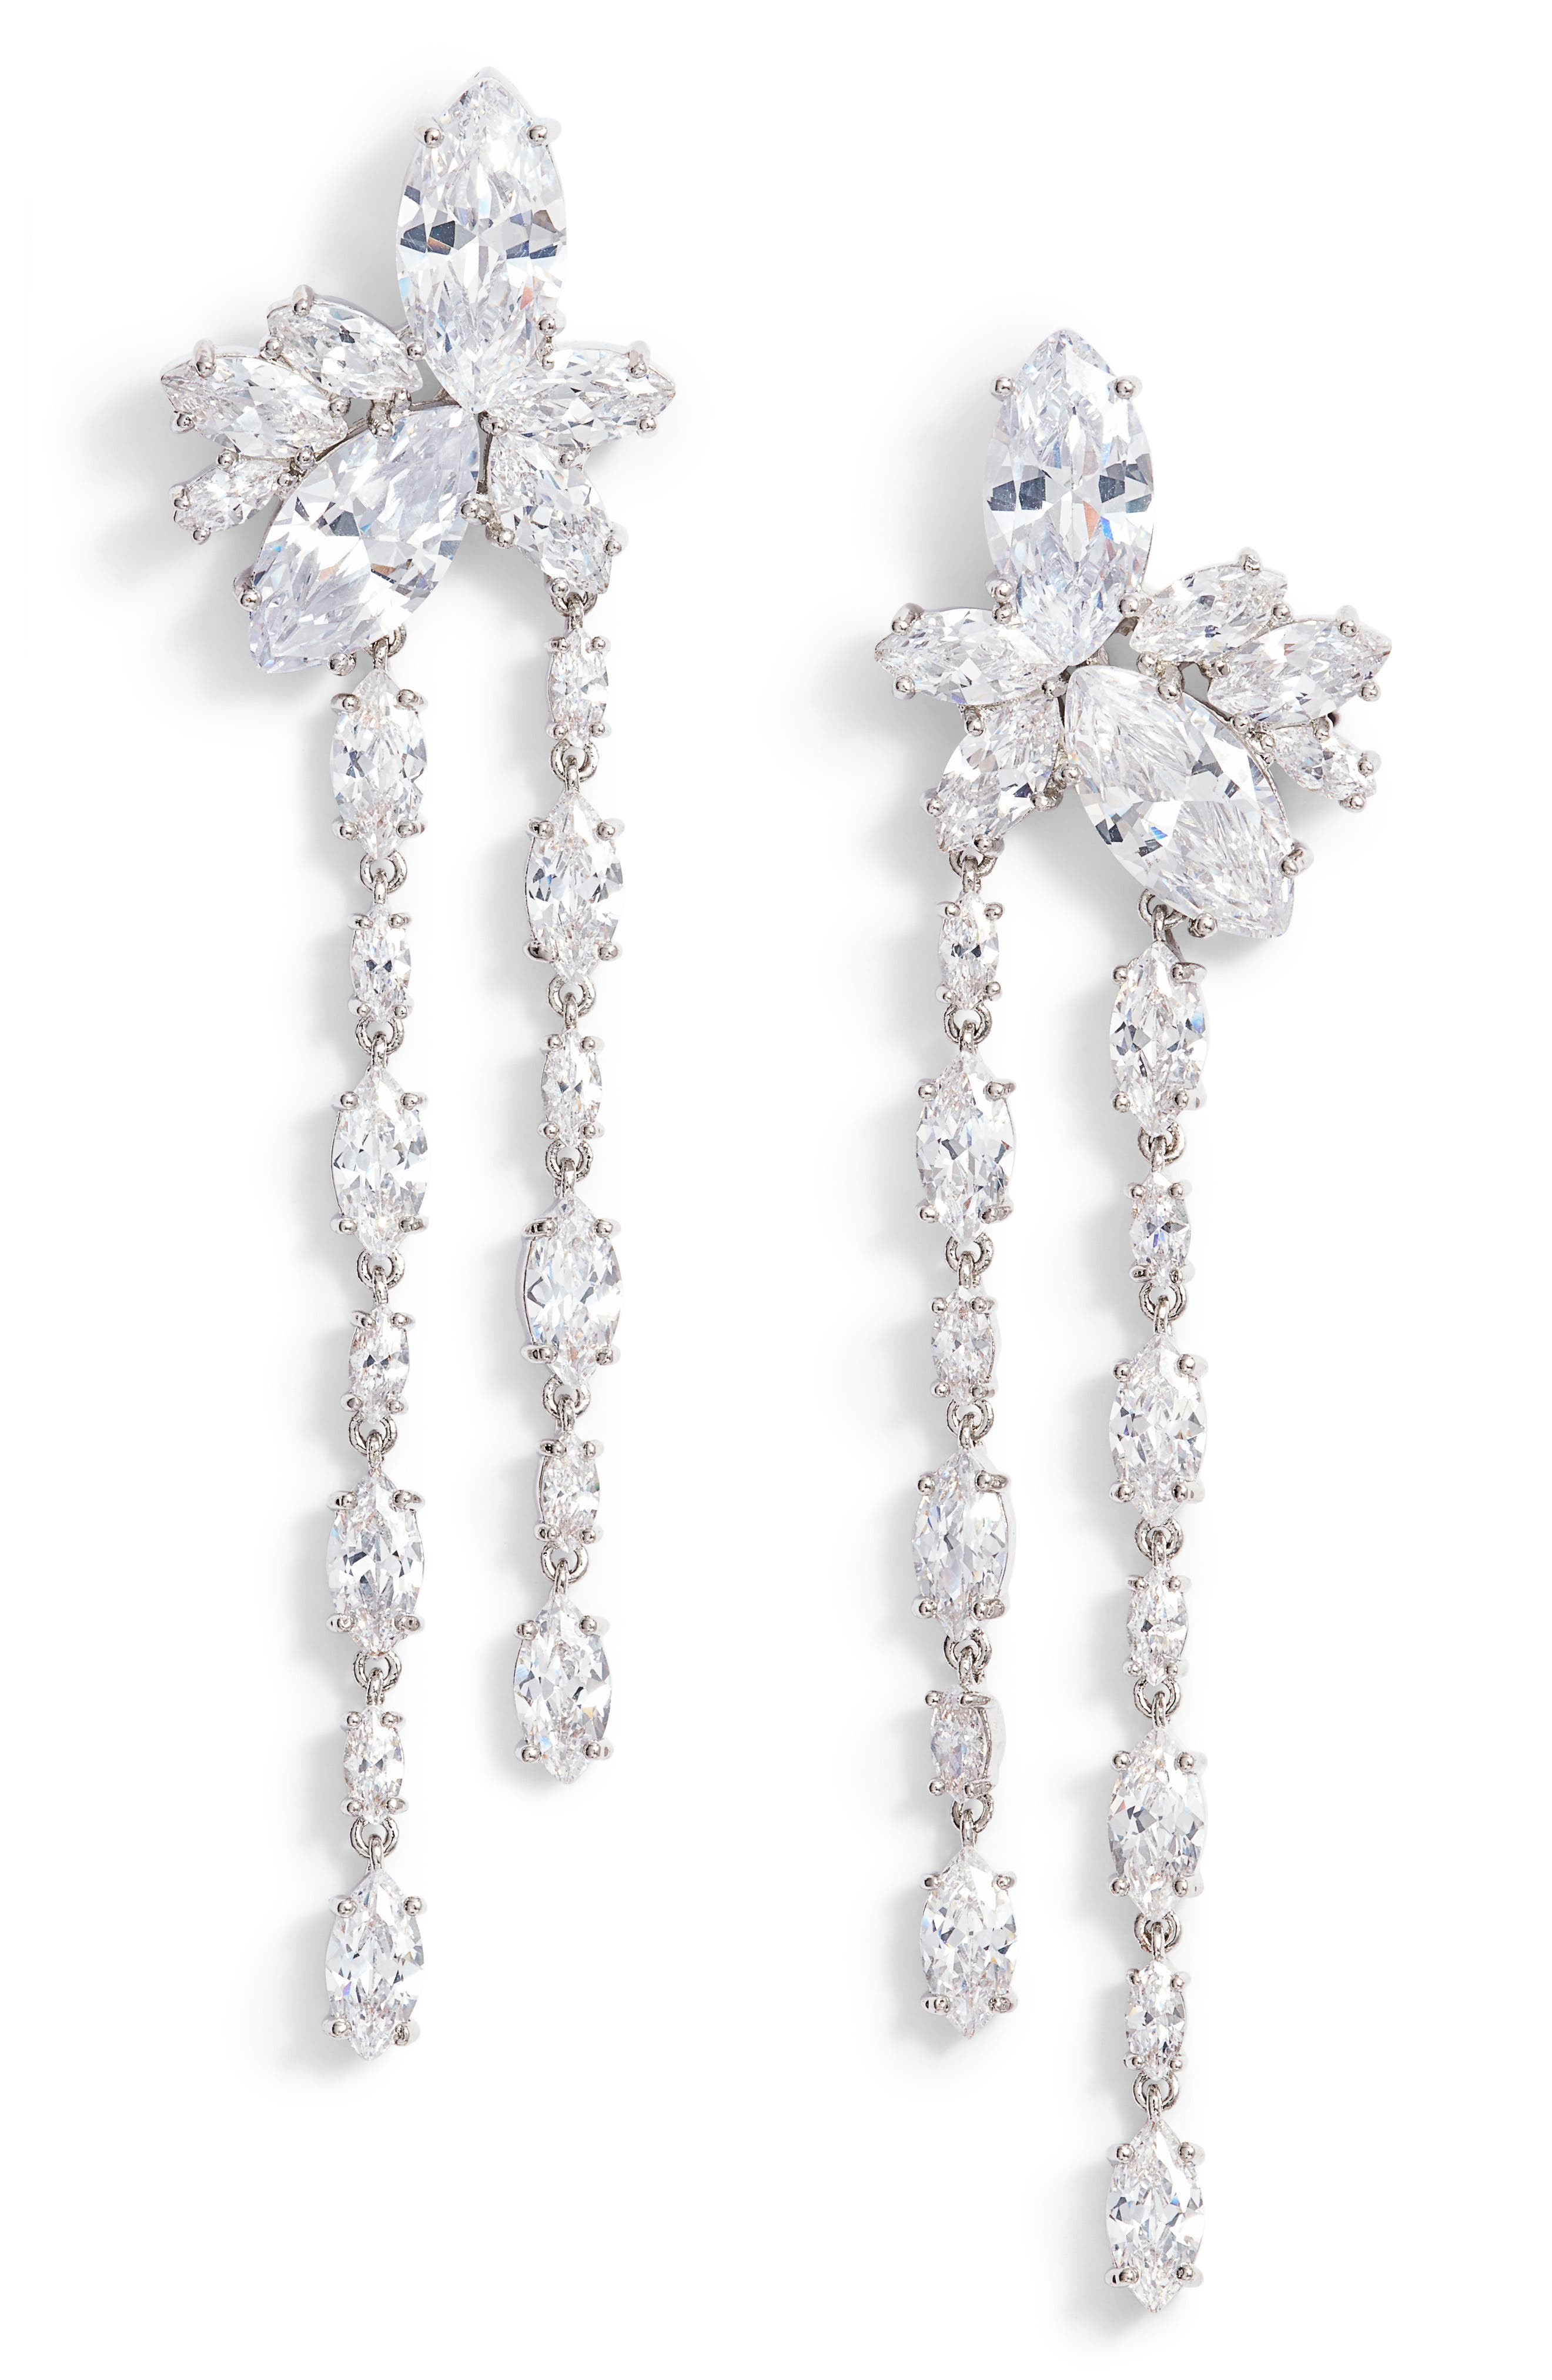 Floral Stone Cluster Drop Earrings,                             Main thumbnail 1, color,                             Silver/ White Cz